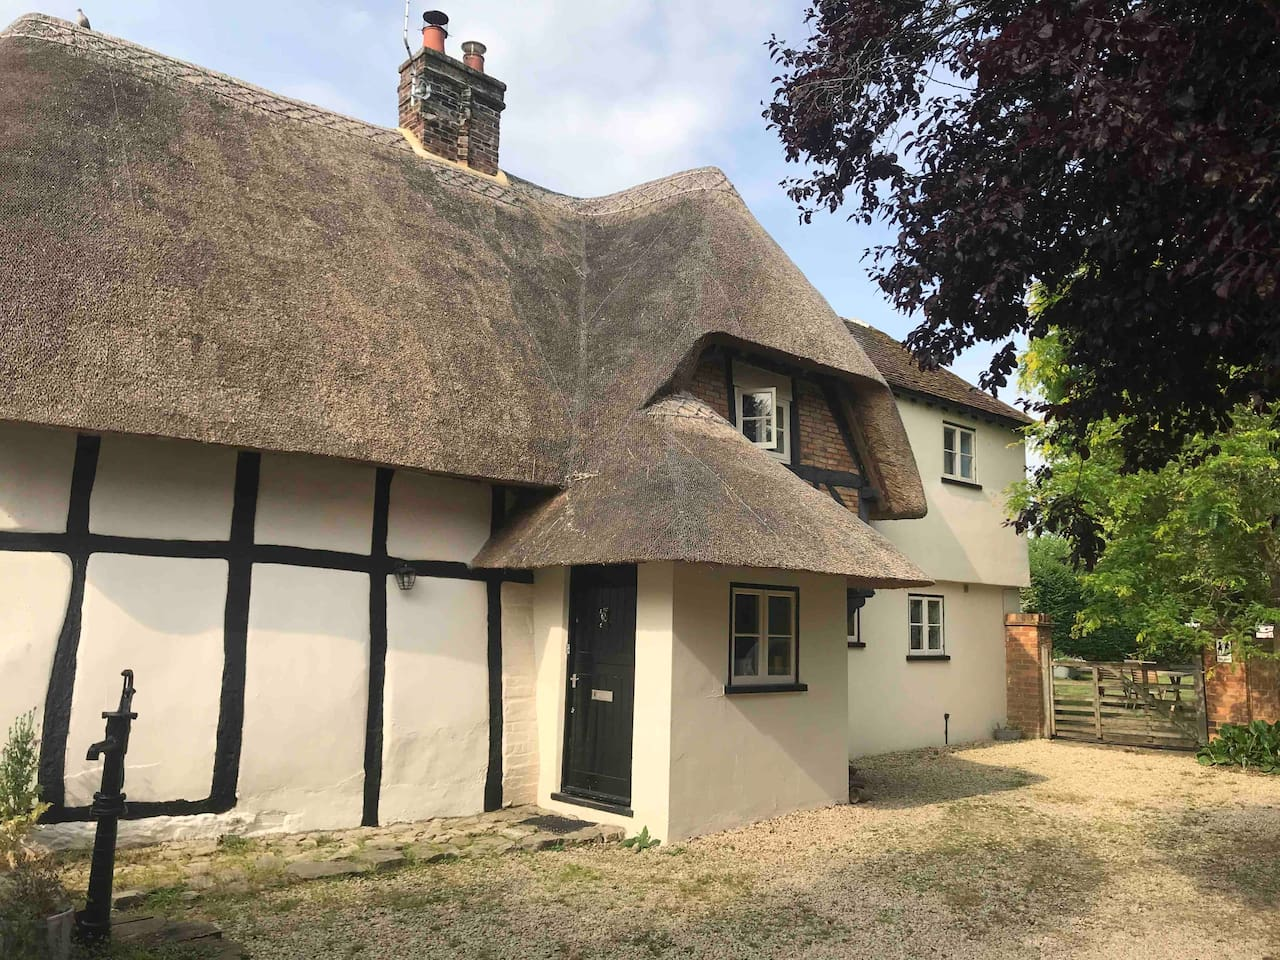 Old Lane Cottage is a beautiful and tranquil place. You have your own private, detached building with all facilities. You also have access to the amazing 1 acre garden.  This is the view of the main house and entrance to the garden and the annexe